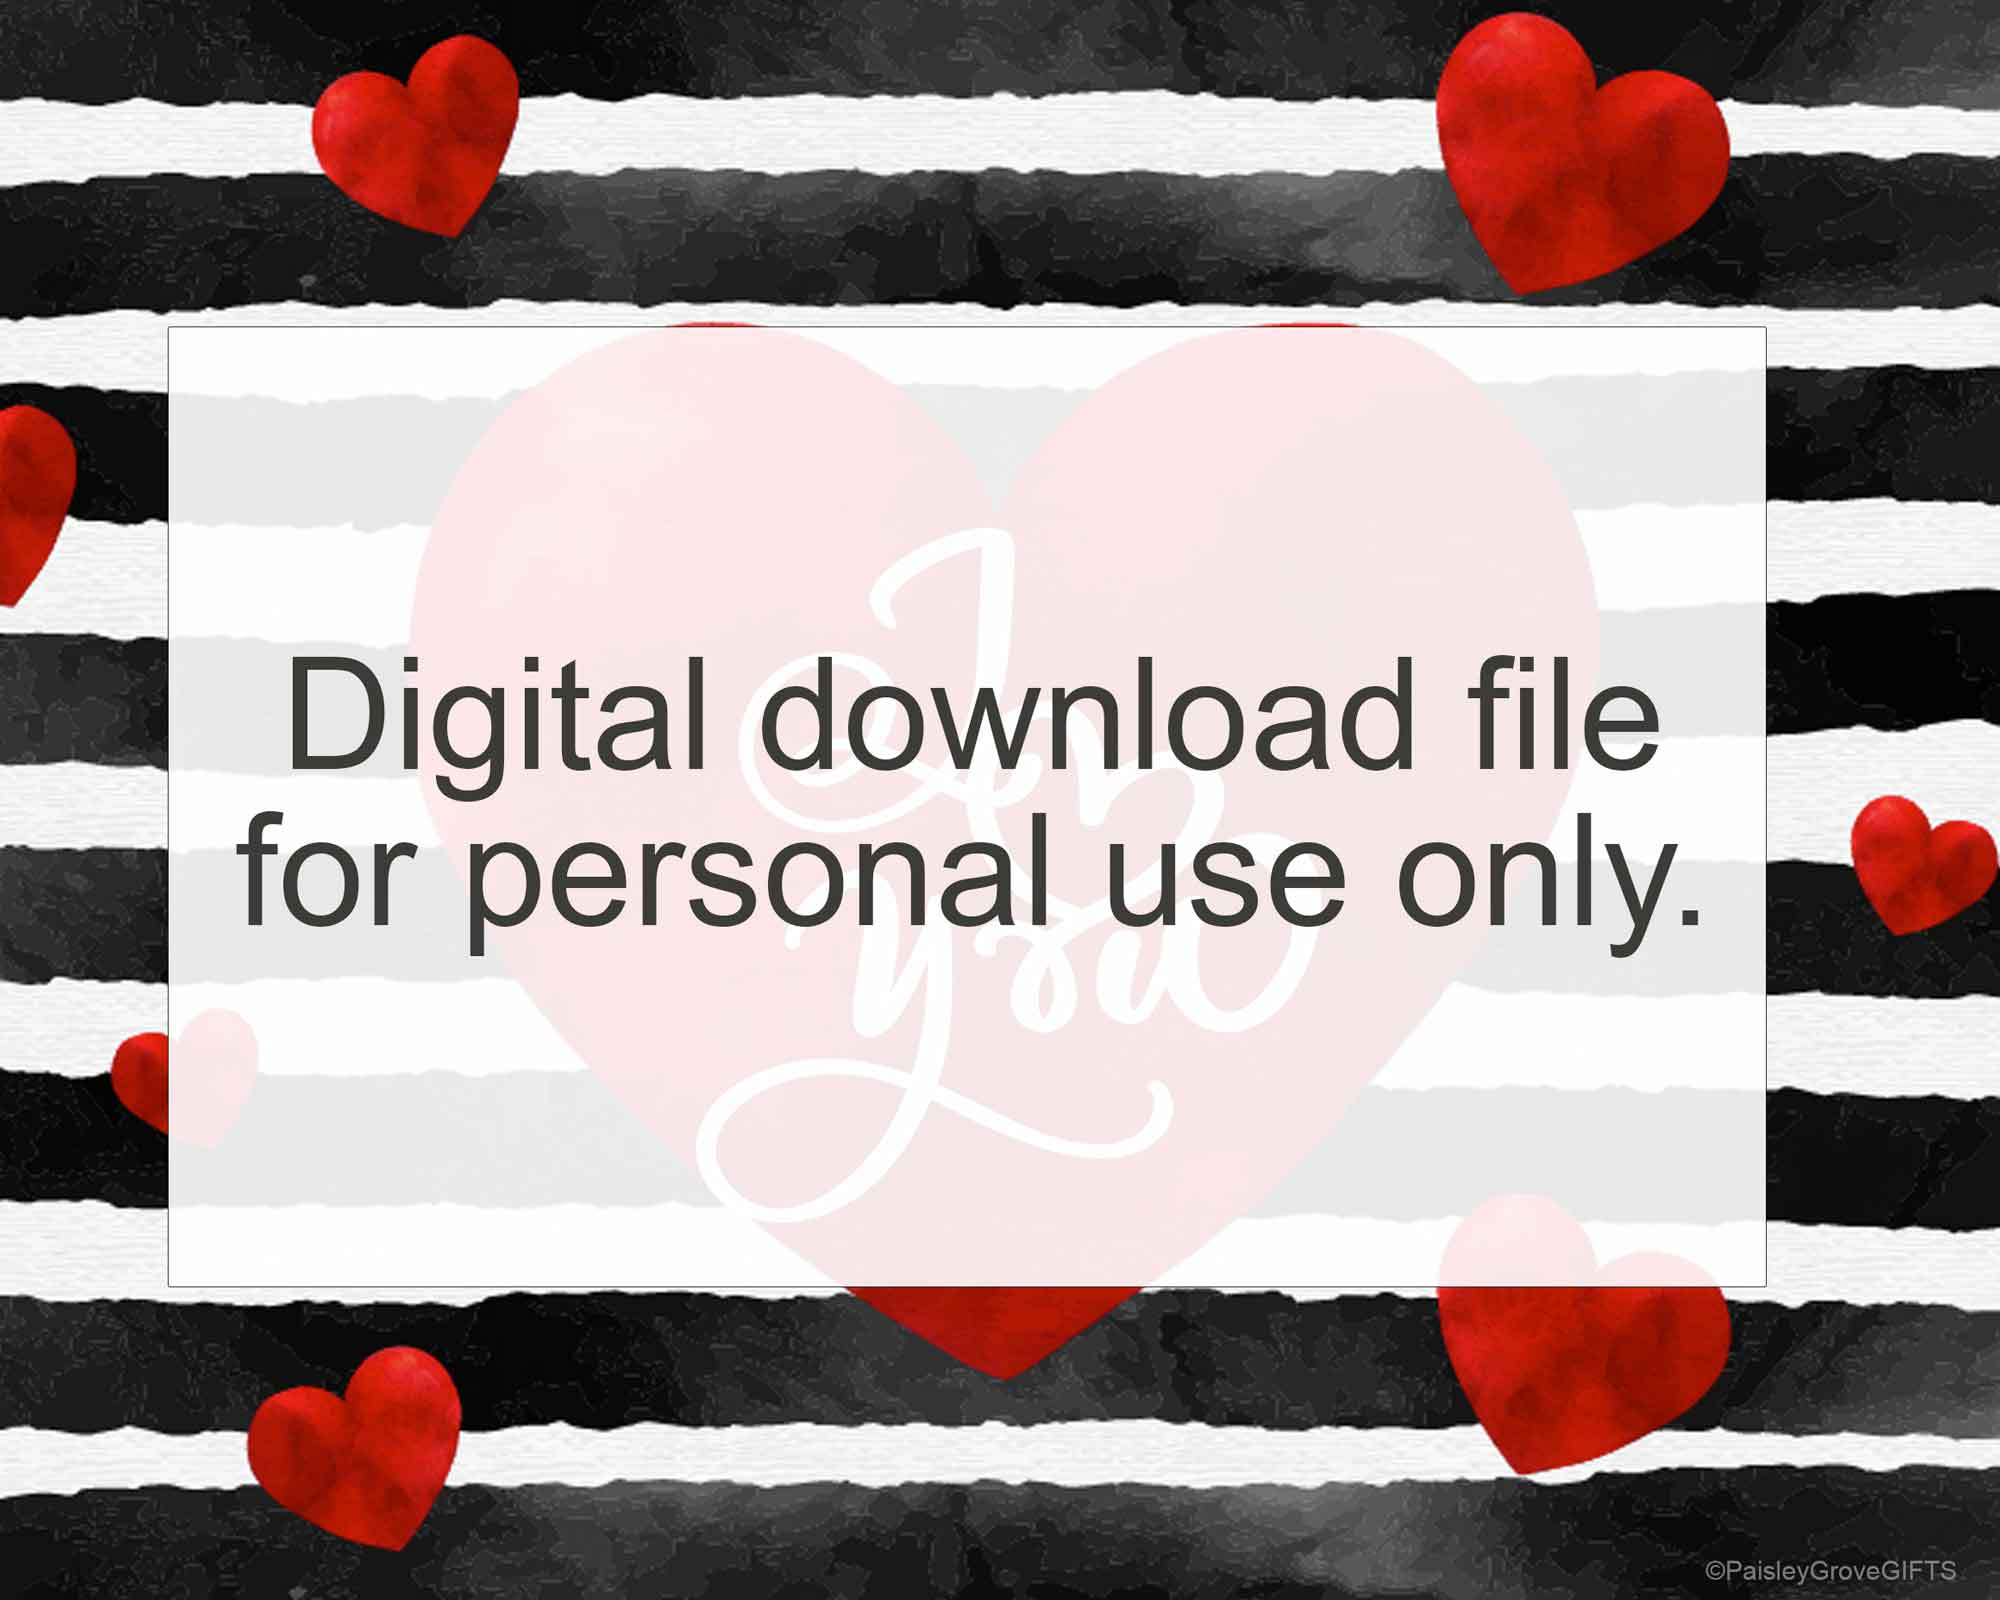 CopyrightPaisleyGroveGIFTS D005a Downloadable file only for personal use Valentines Decor I Love You Print